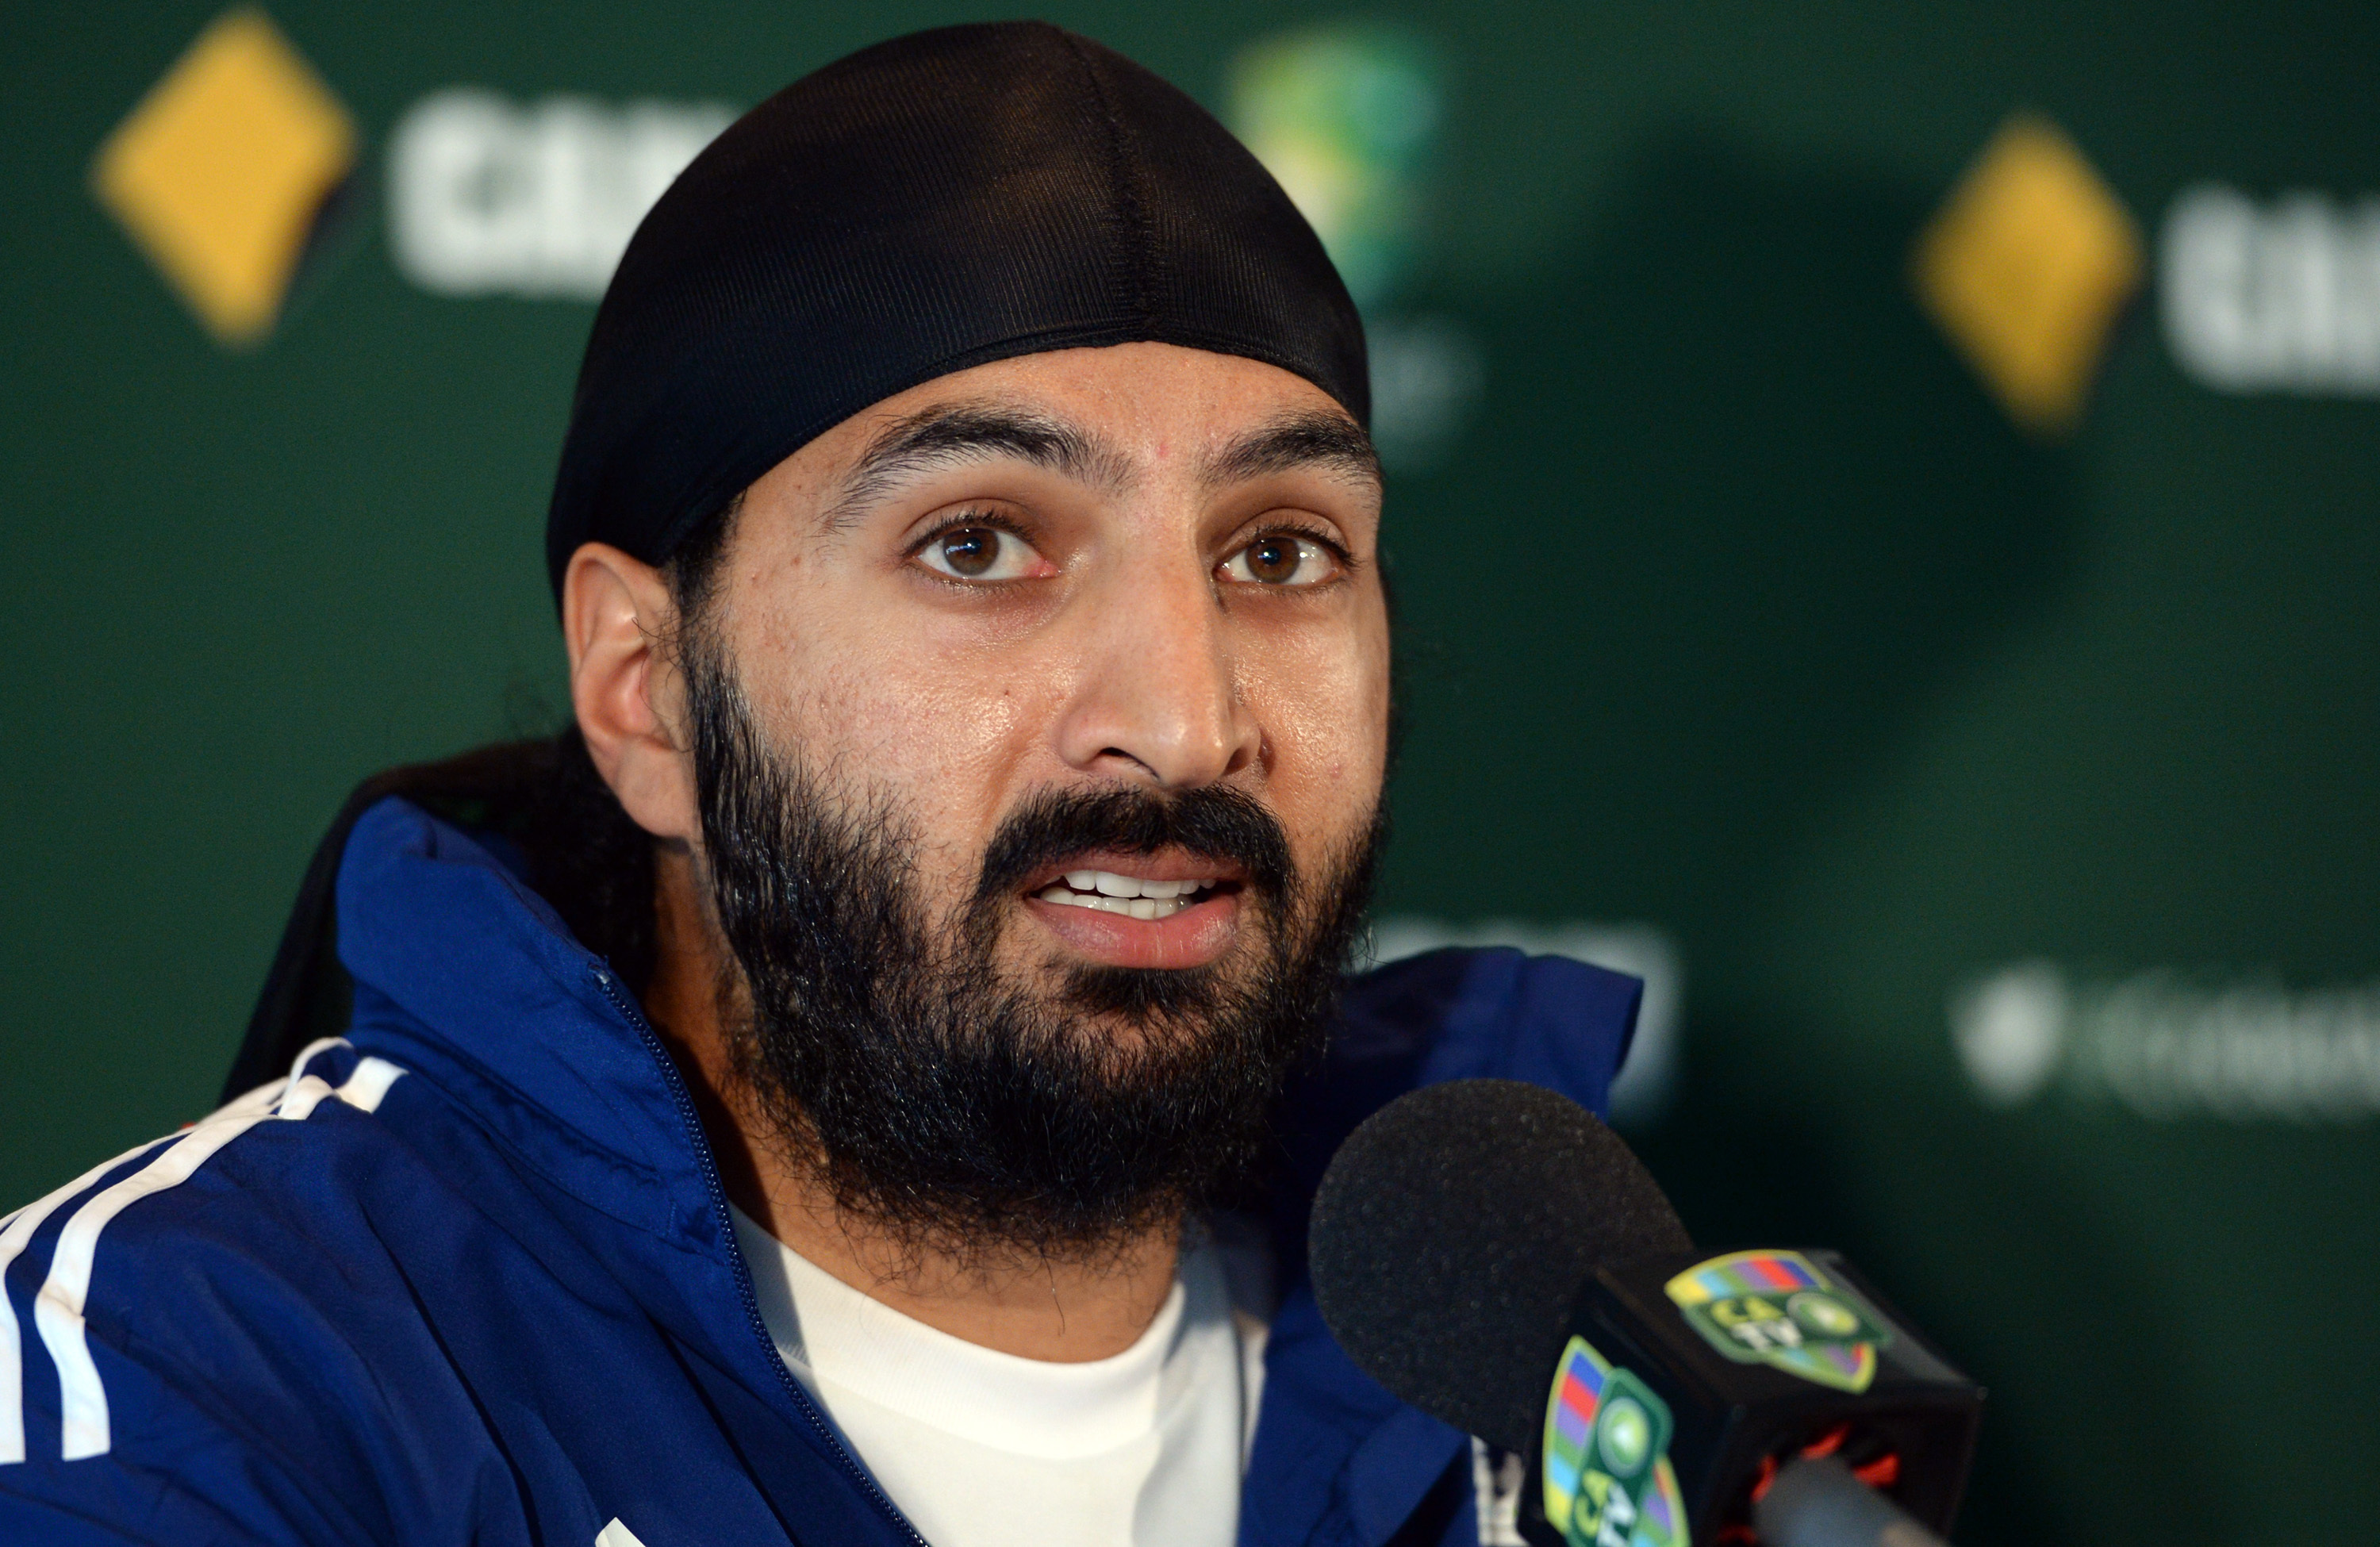 Monty Panesar drops out of Dancing on Ice